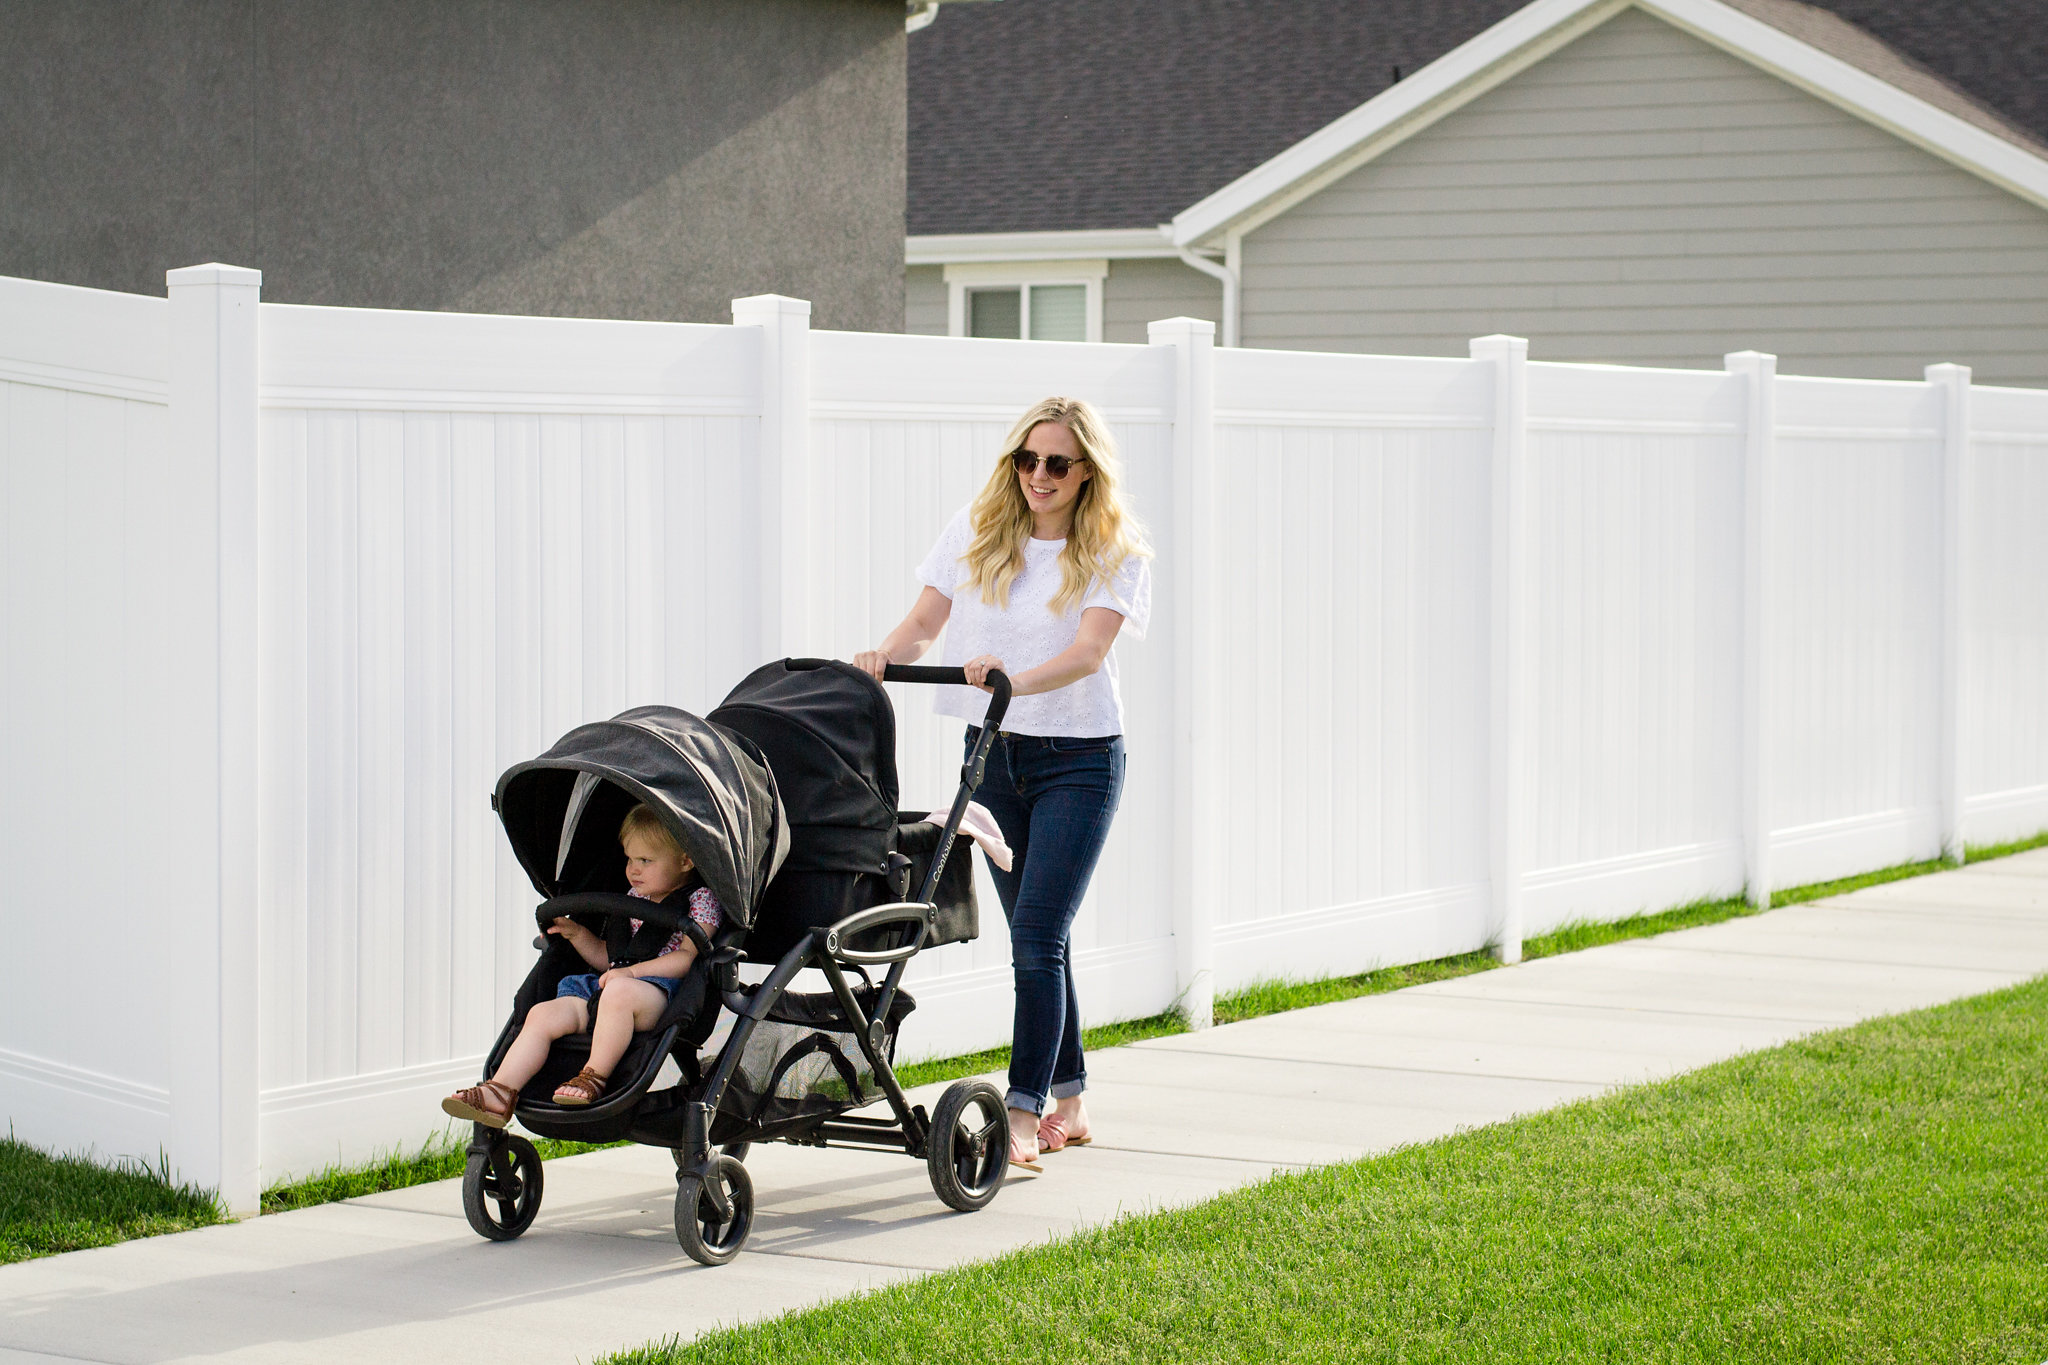 Stroller Safety Tips - Mom strolling with babies in Contours Options Elite Double Stroller